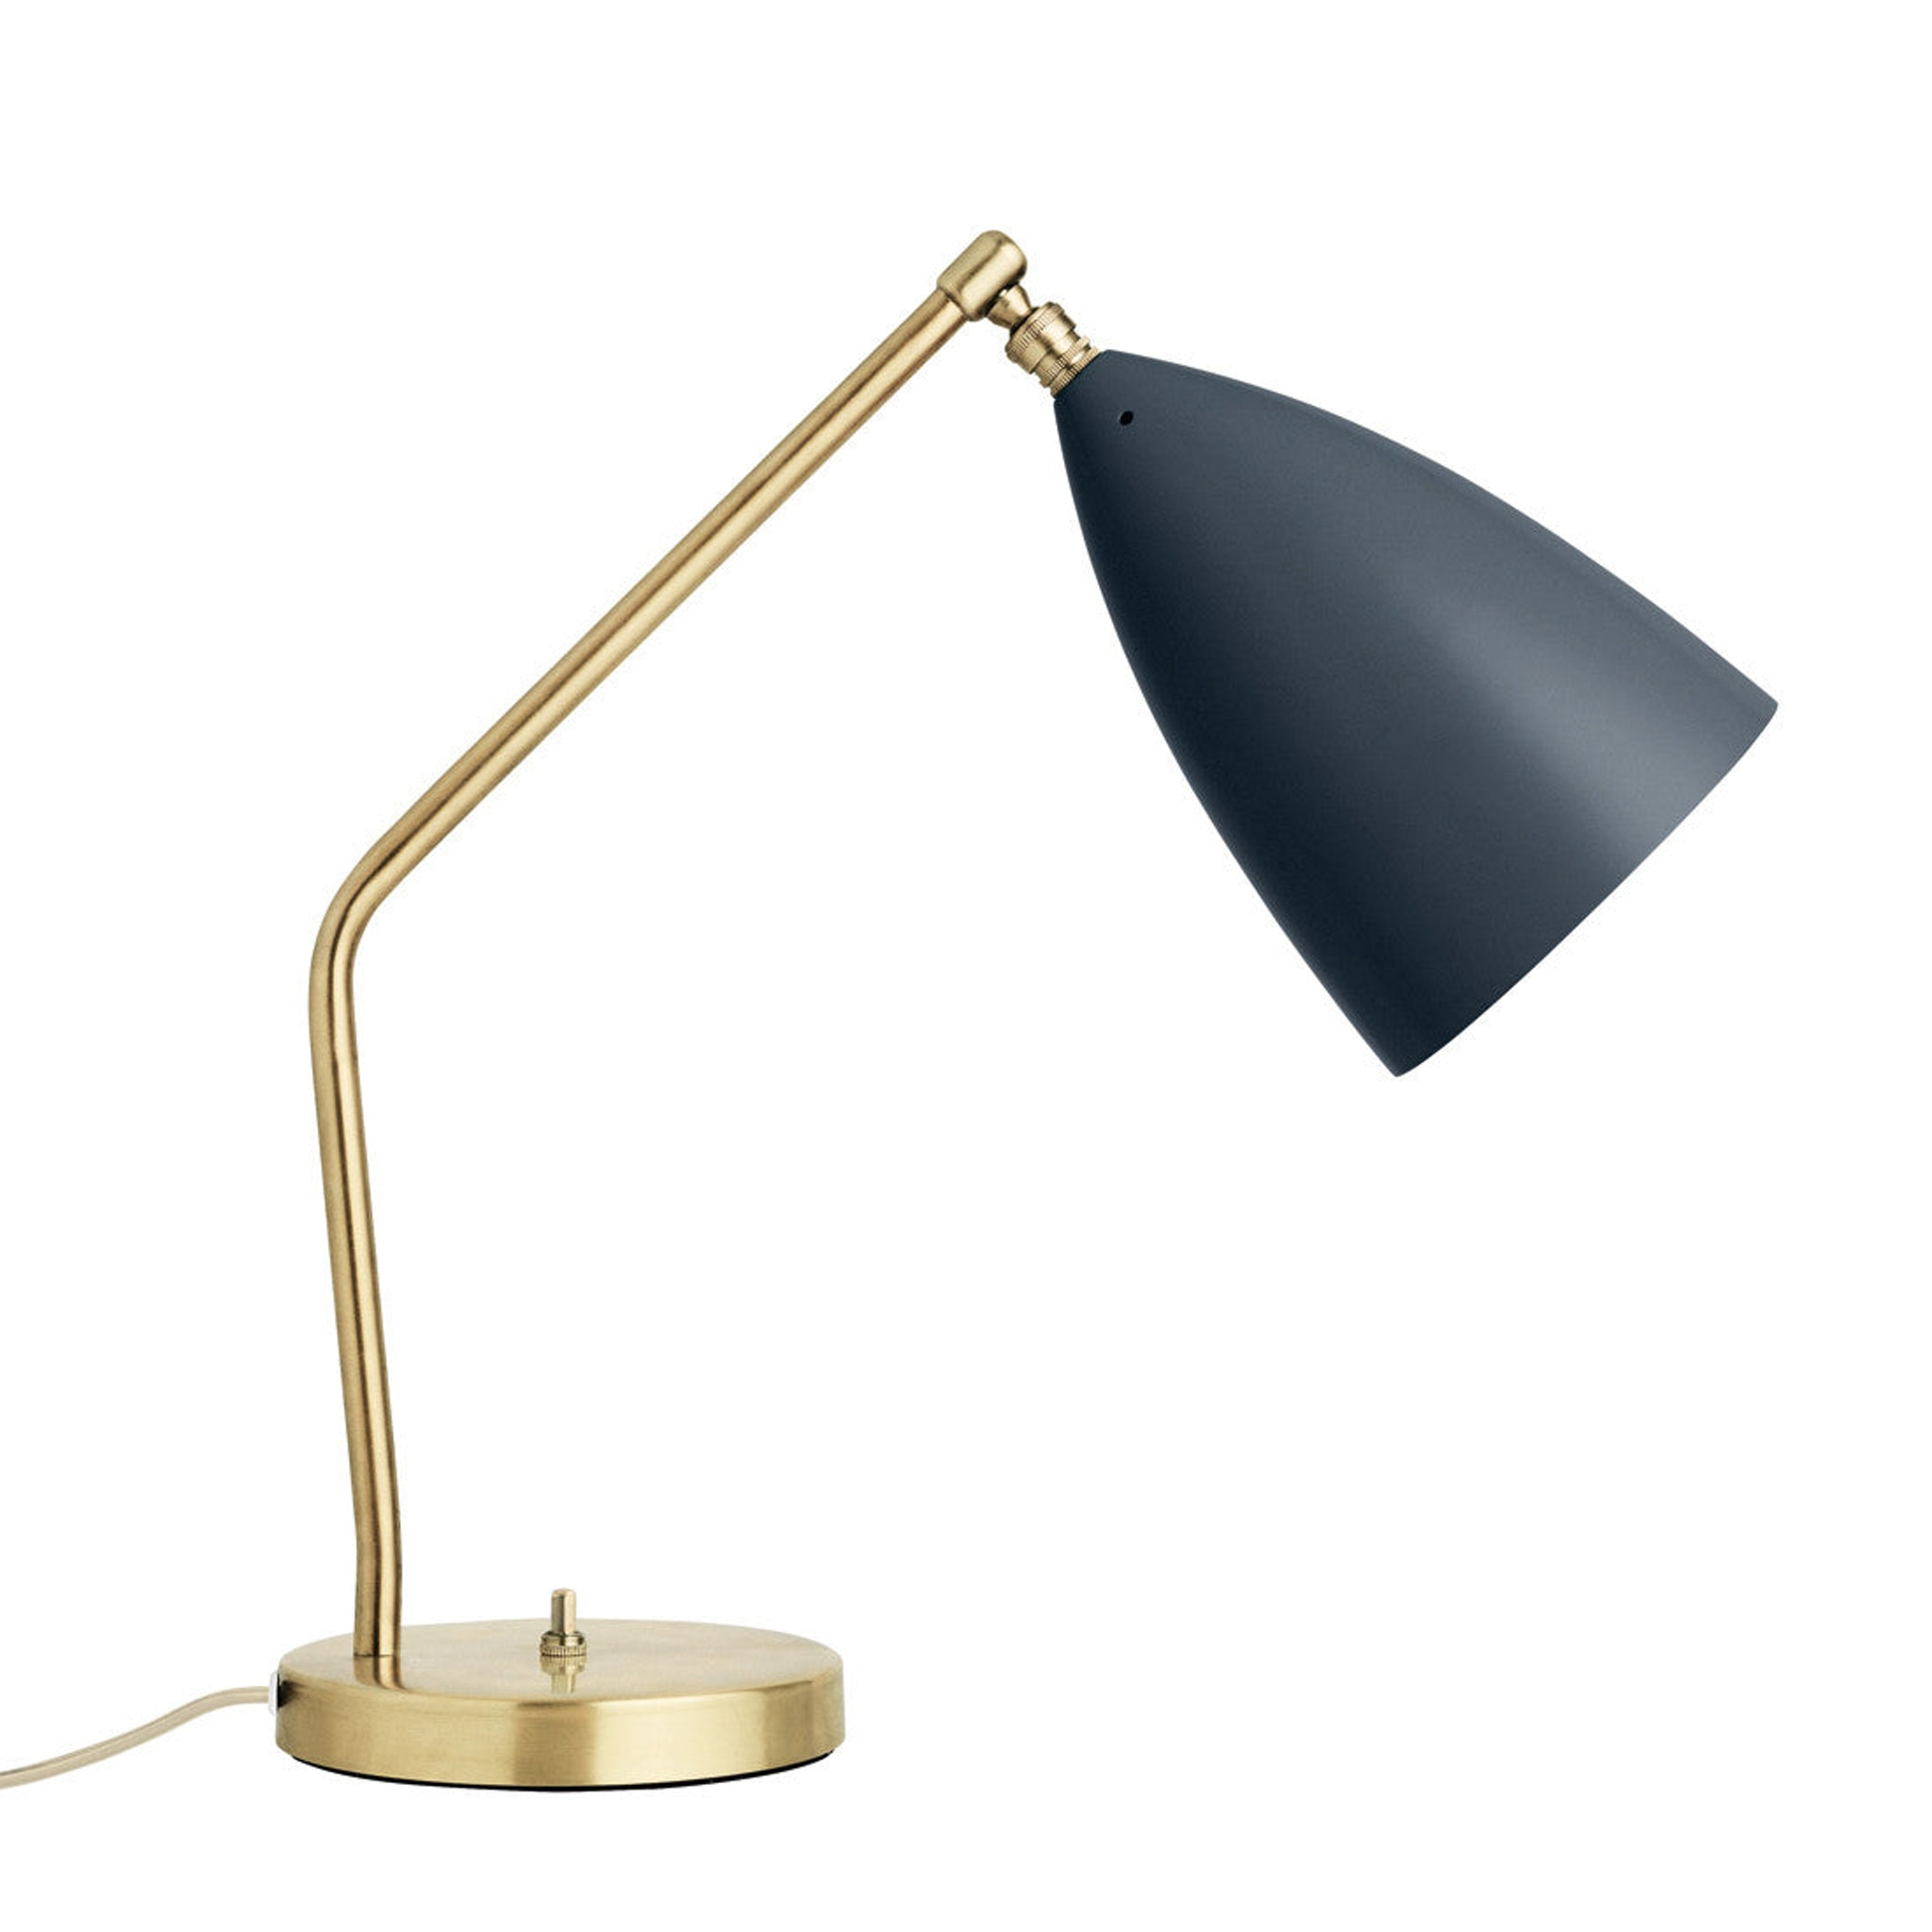 Grasshopper Table Lamp by Greta Grossman